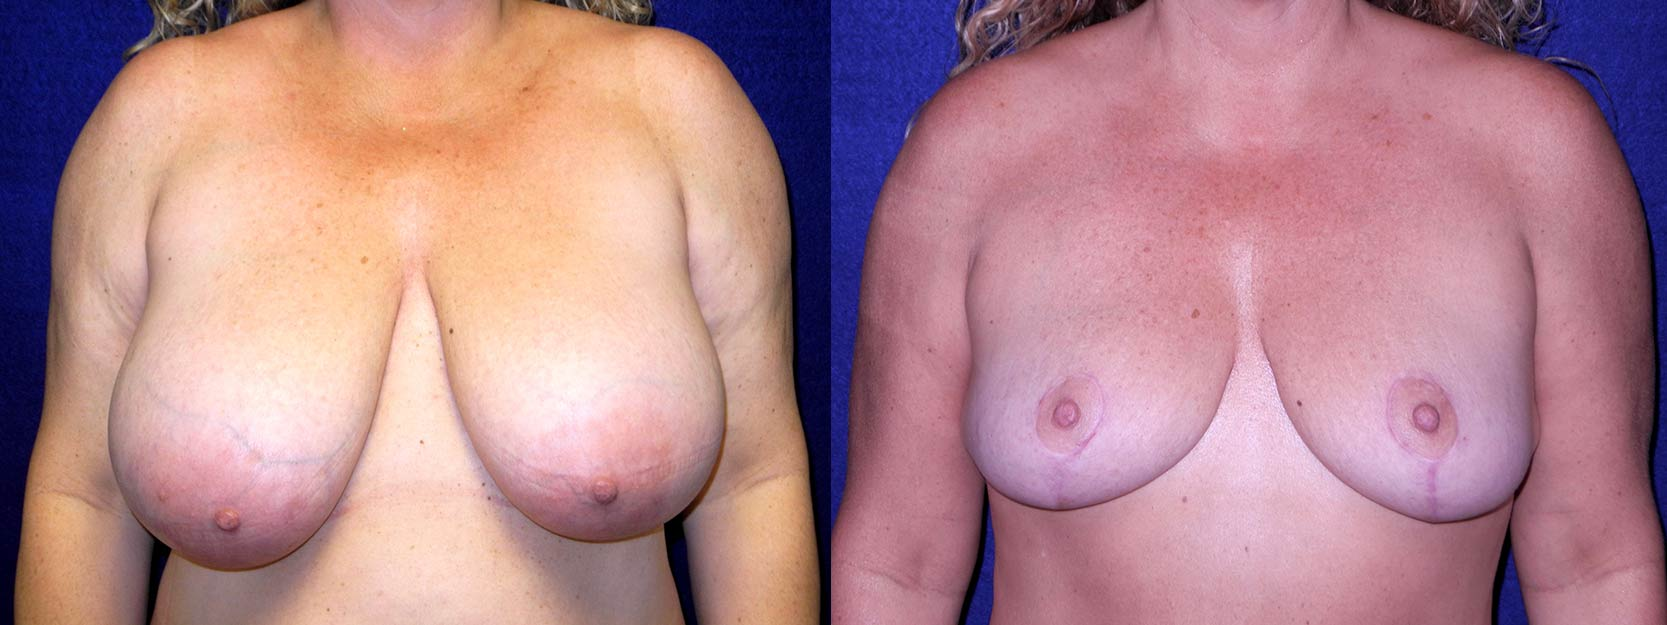 Frontal View - Breast Reduction After Pregnancy